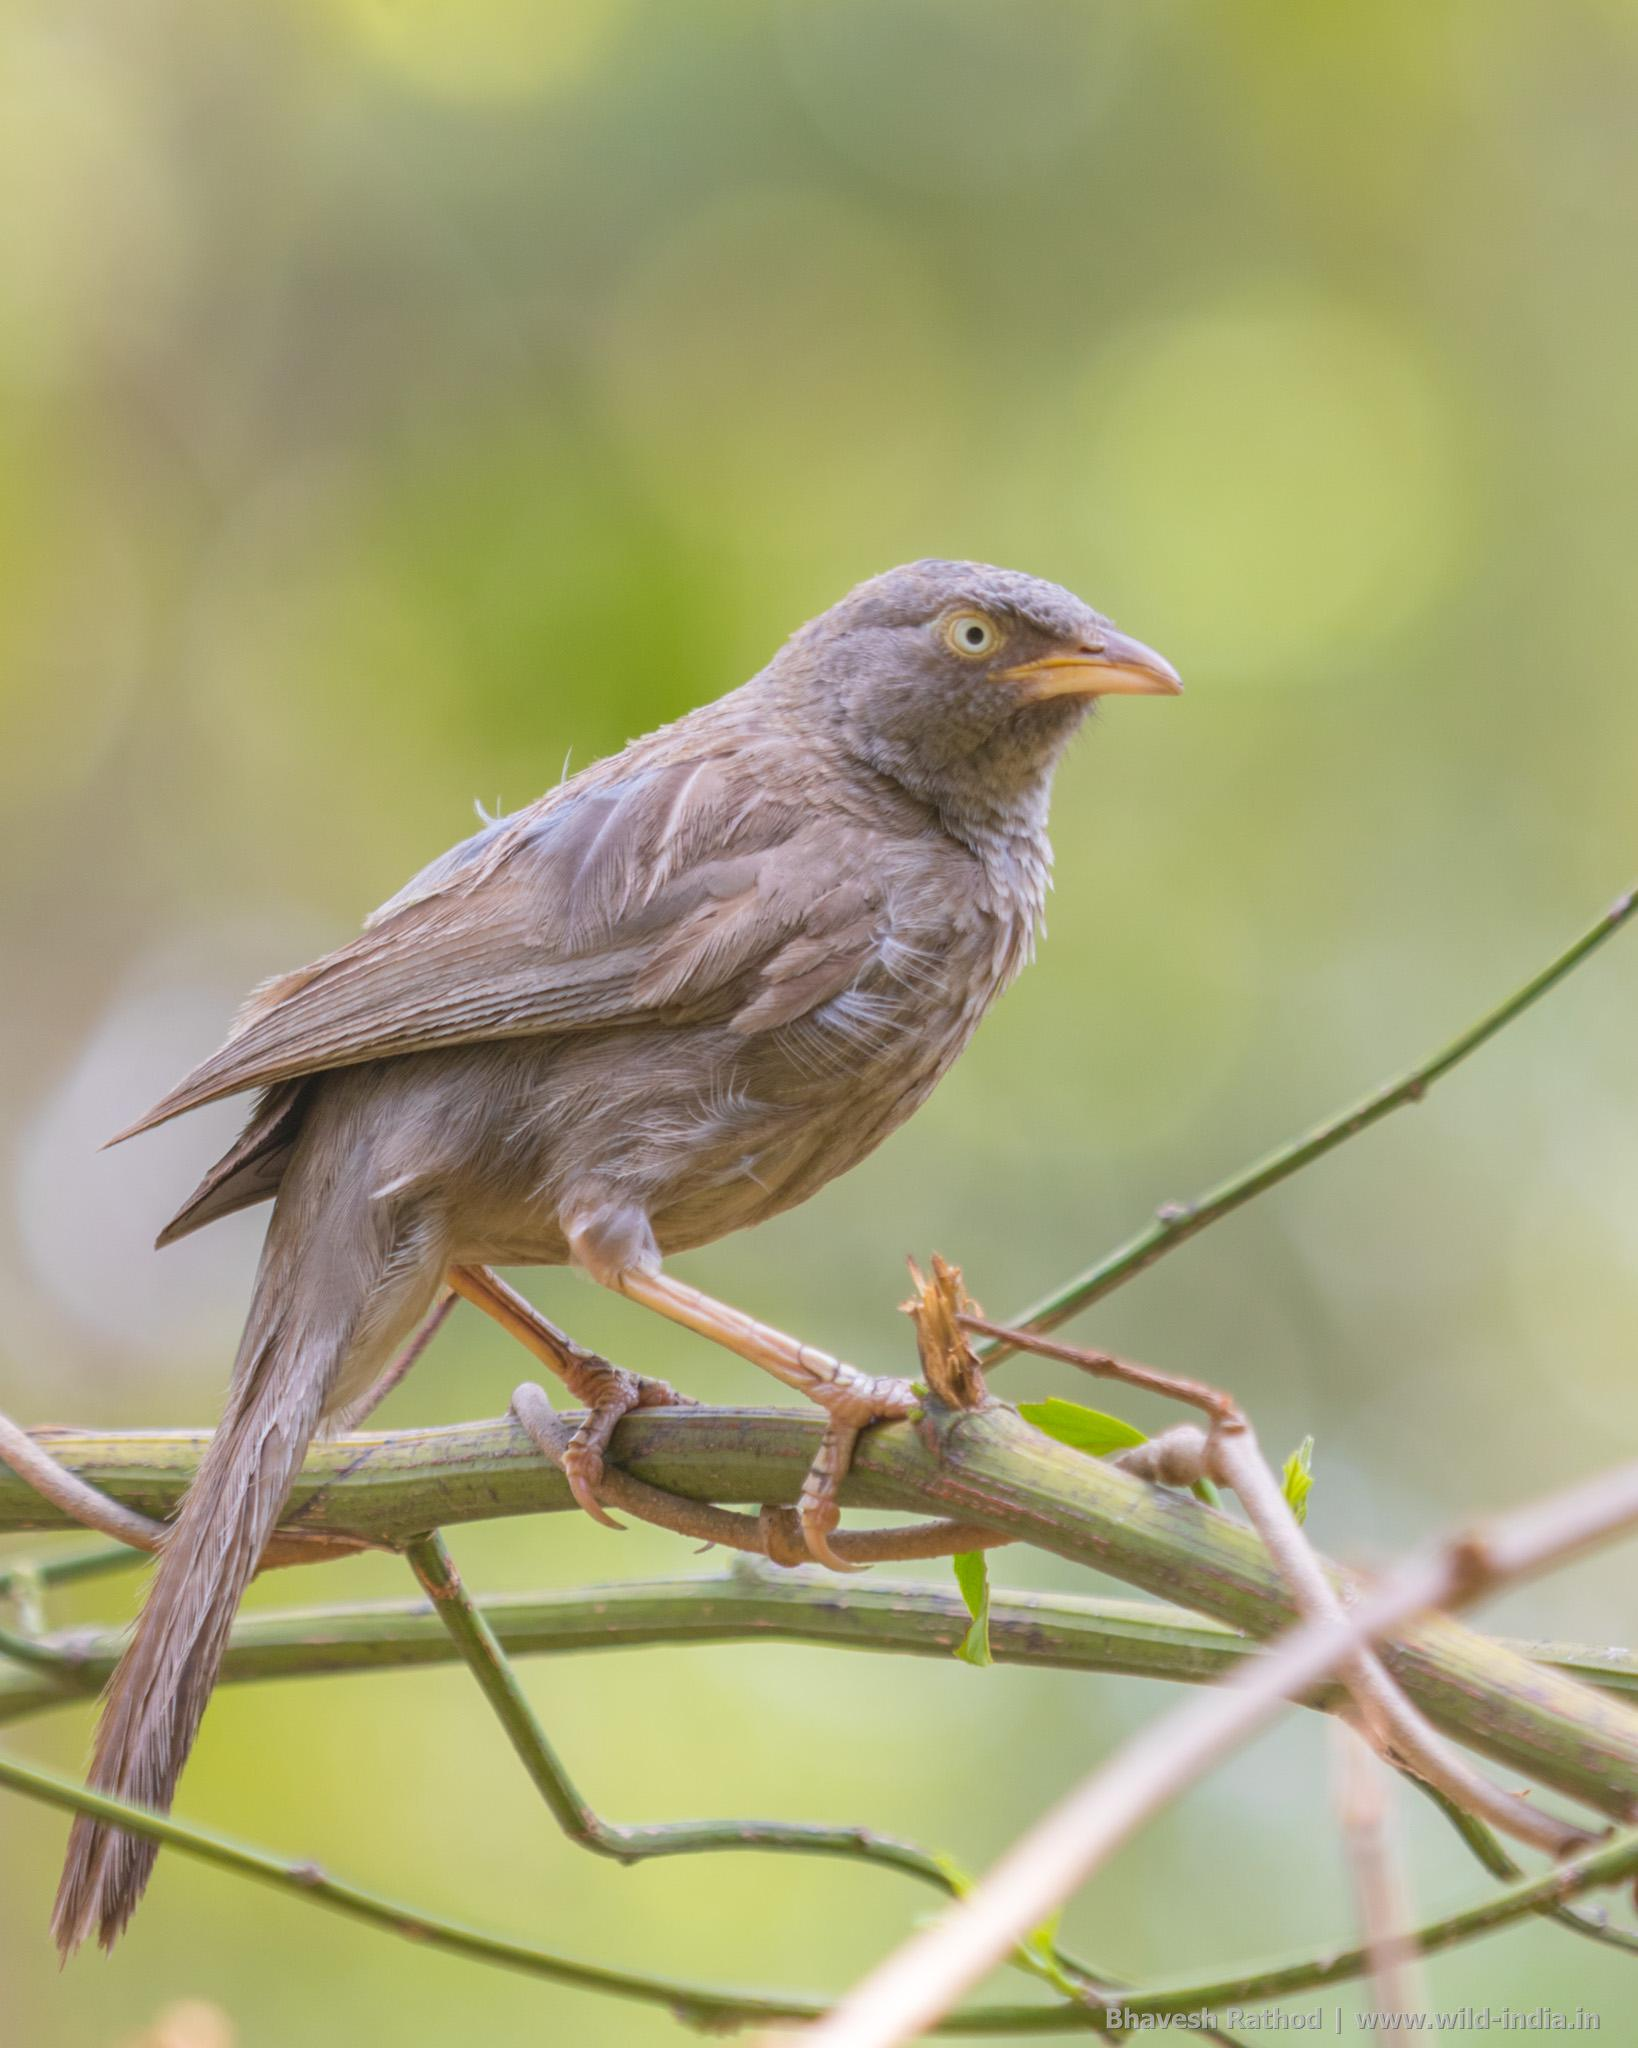 Jungle babbler is a noisy bird